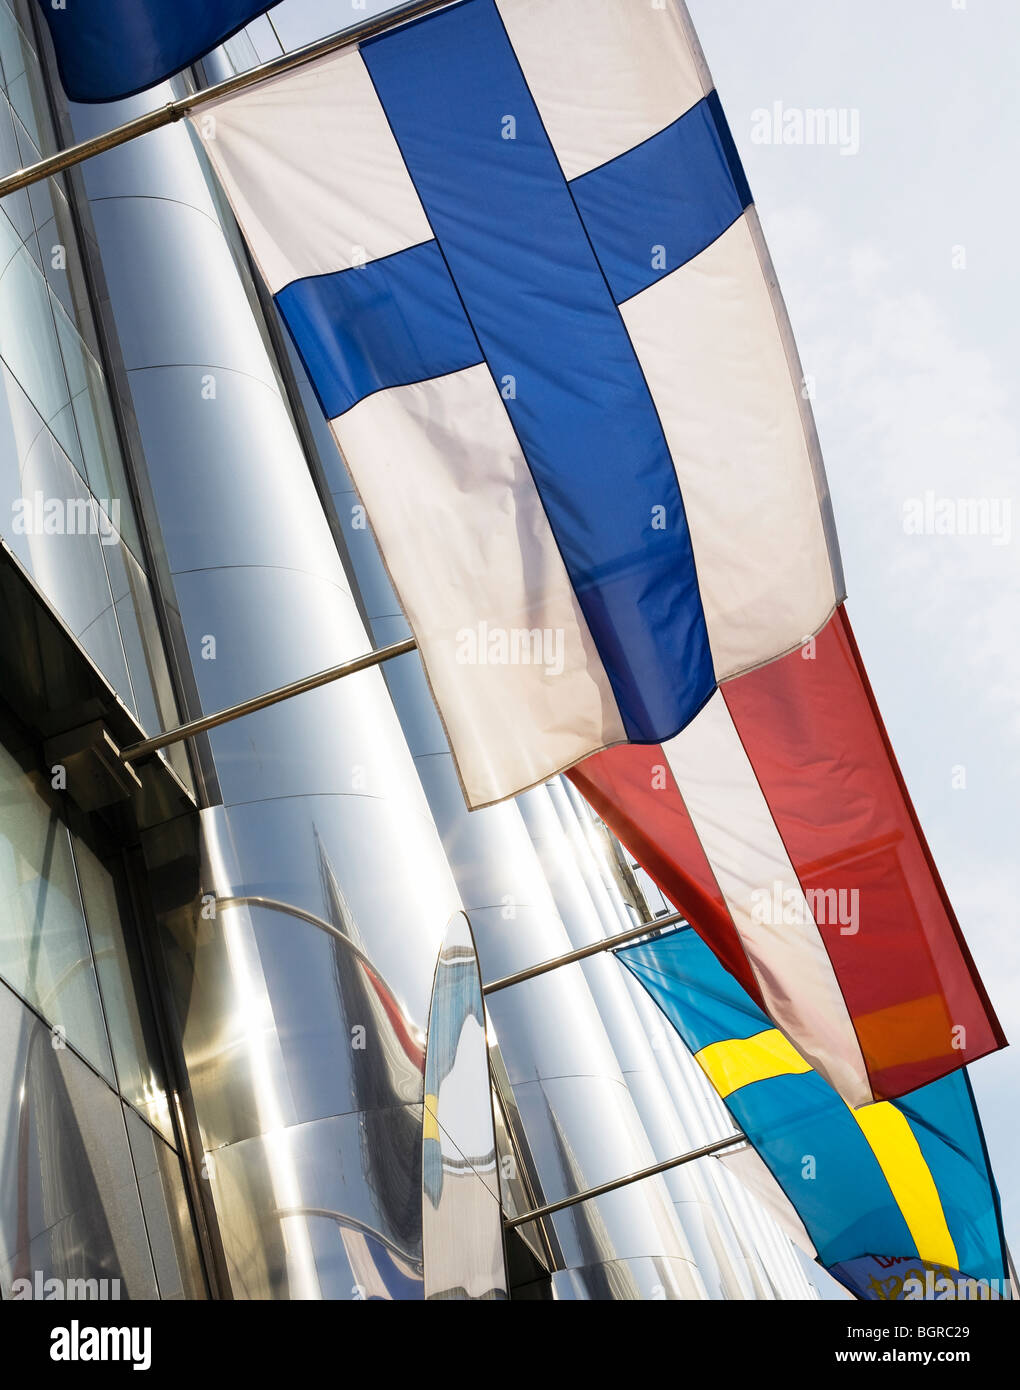 Nordic flags on a facade, Sweden. - Stock Image